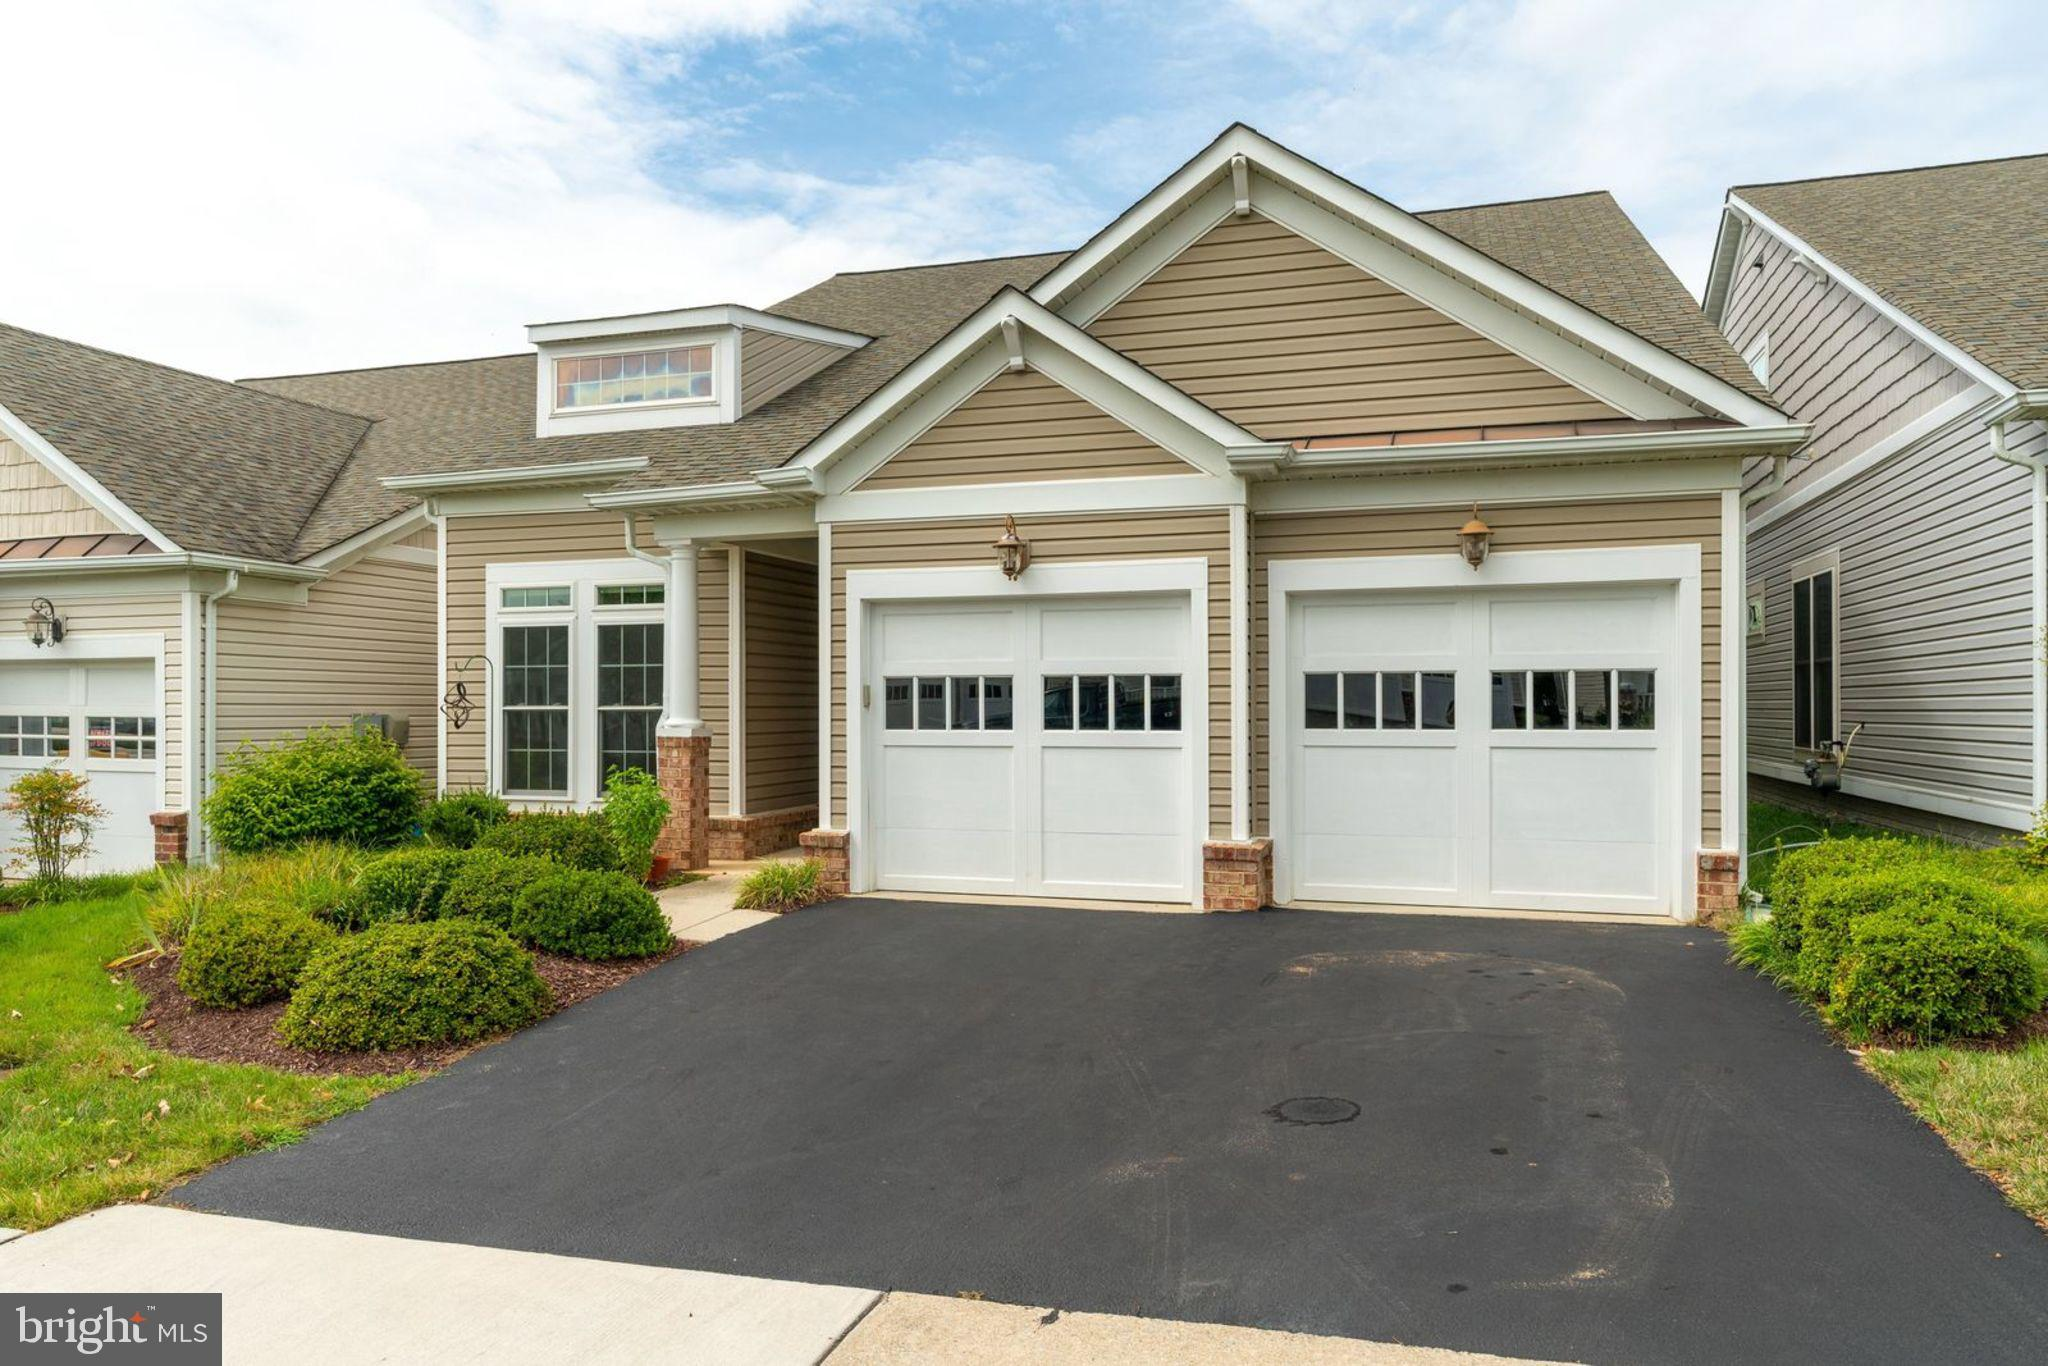 WINTHROP Model in 55+Community - Main Level living at its finest. 3 BR, 3 Full BA, Office, LR, DR Eat in Kitchen, 2 Car Garage.   Driveway sealed in 2019, 2 Yr old Furnace and A/C w/ electronic filter and humidifier. Hardwood floors throughout Main level.  This model has a Sunroom/Florida room w  Tile floor and walk out to Trex type Deck. Eat in Kitchen w/ ceramic tile backsplash, ALL appliances are SS, granite counters and lovely picture window at table area to enjoy the view.Refrigerator and Microwave replaced in last few years. Master Bath has both walk in Tile Shower and Large jacuzzi style soaking Tub. Enjoy this Private Community Clubhouse w/ Indoor Pool, Spa, Fitness rm, Billiards rm, Banquet rm, Social/Activity rm, Dance/Exercise rm, Tennis, Bocci, Tot-Lot and Gardens. Close to I-95, VRE and Ft Belvoir.  Great Home, Great Location!